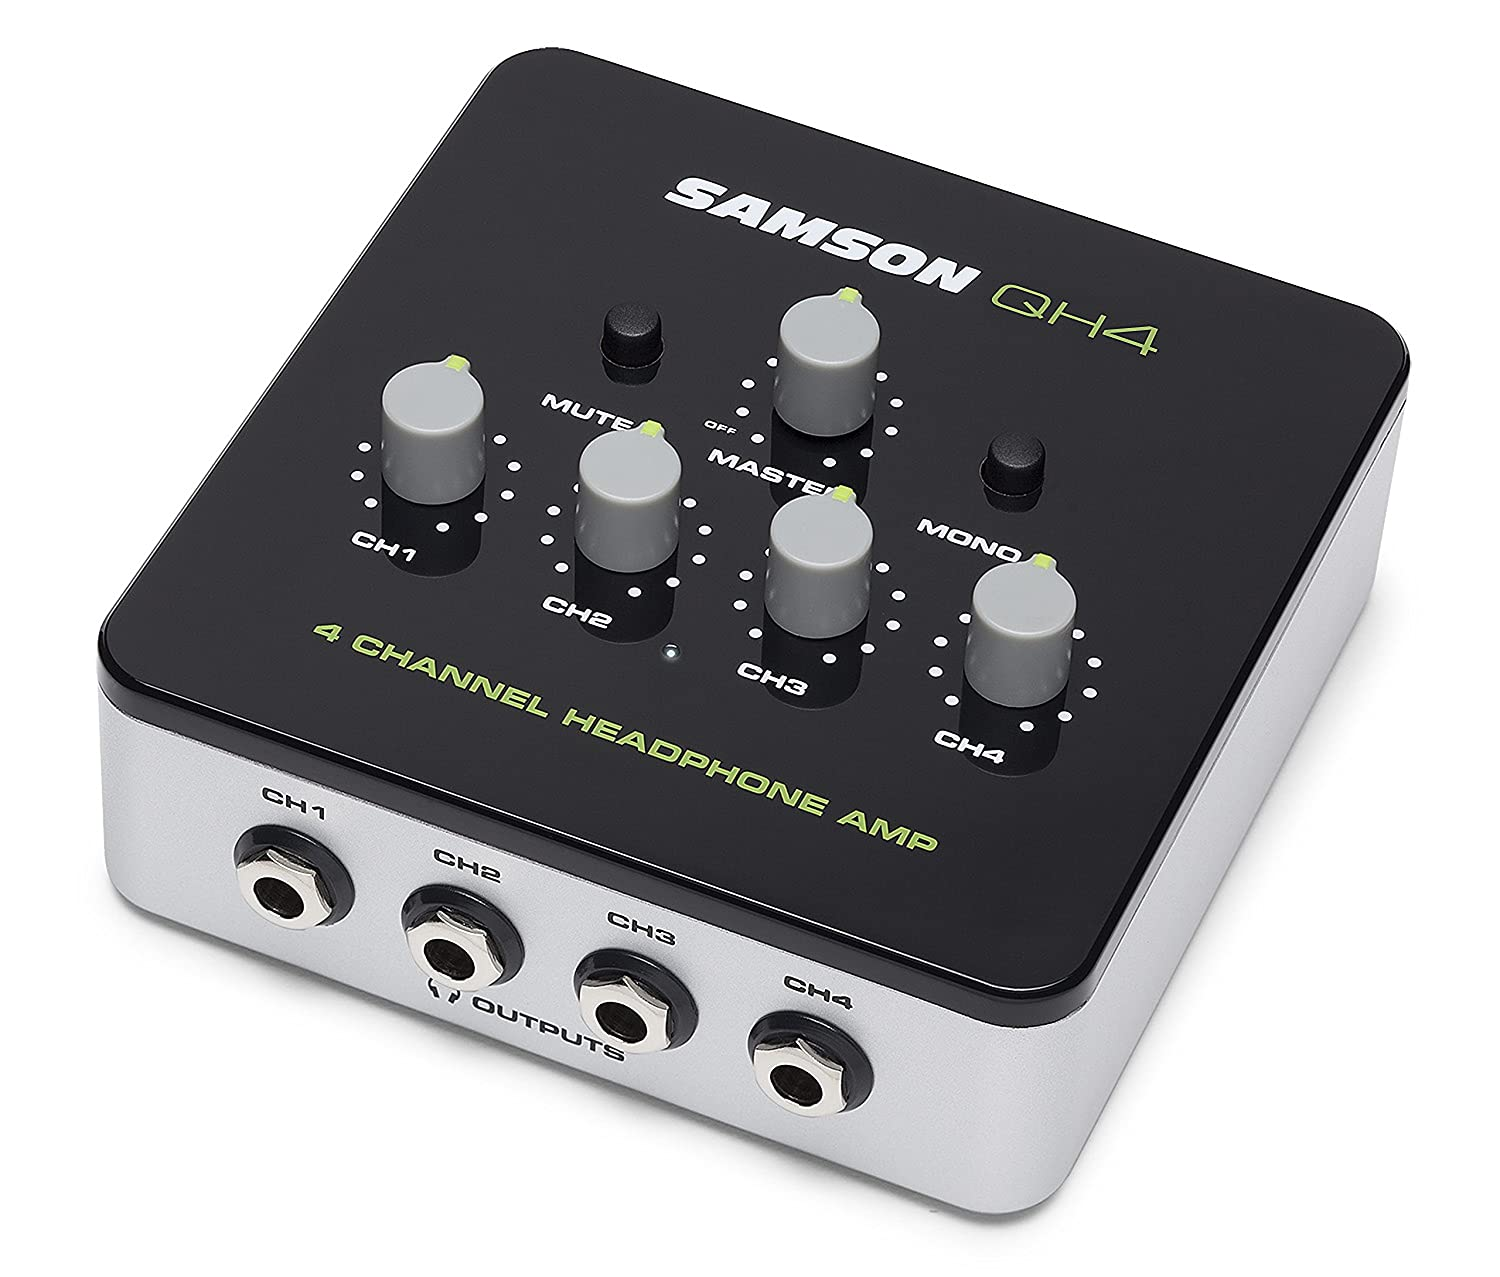 4. Samson QH4 4-Channel Headphone Amplifier (SAQH4)